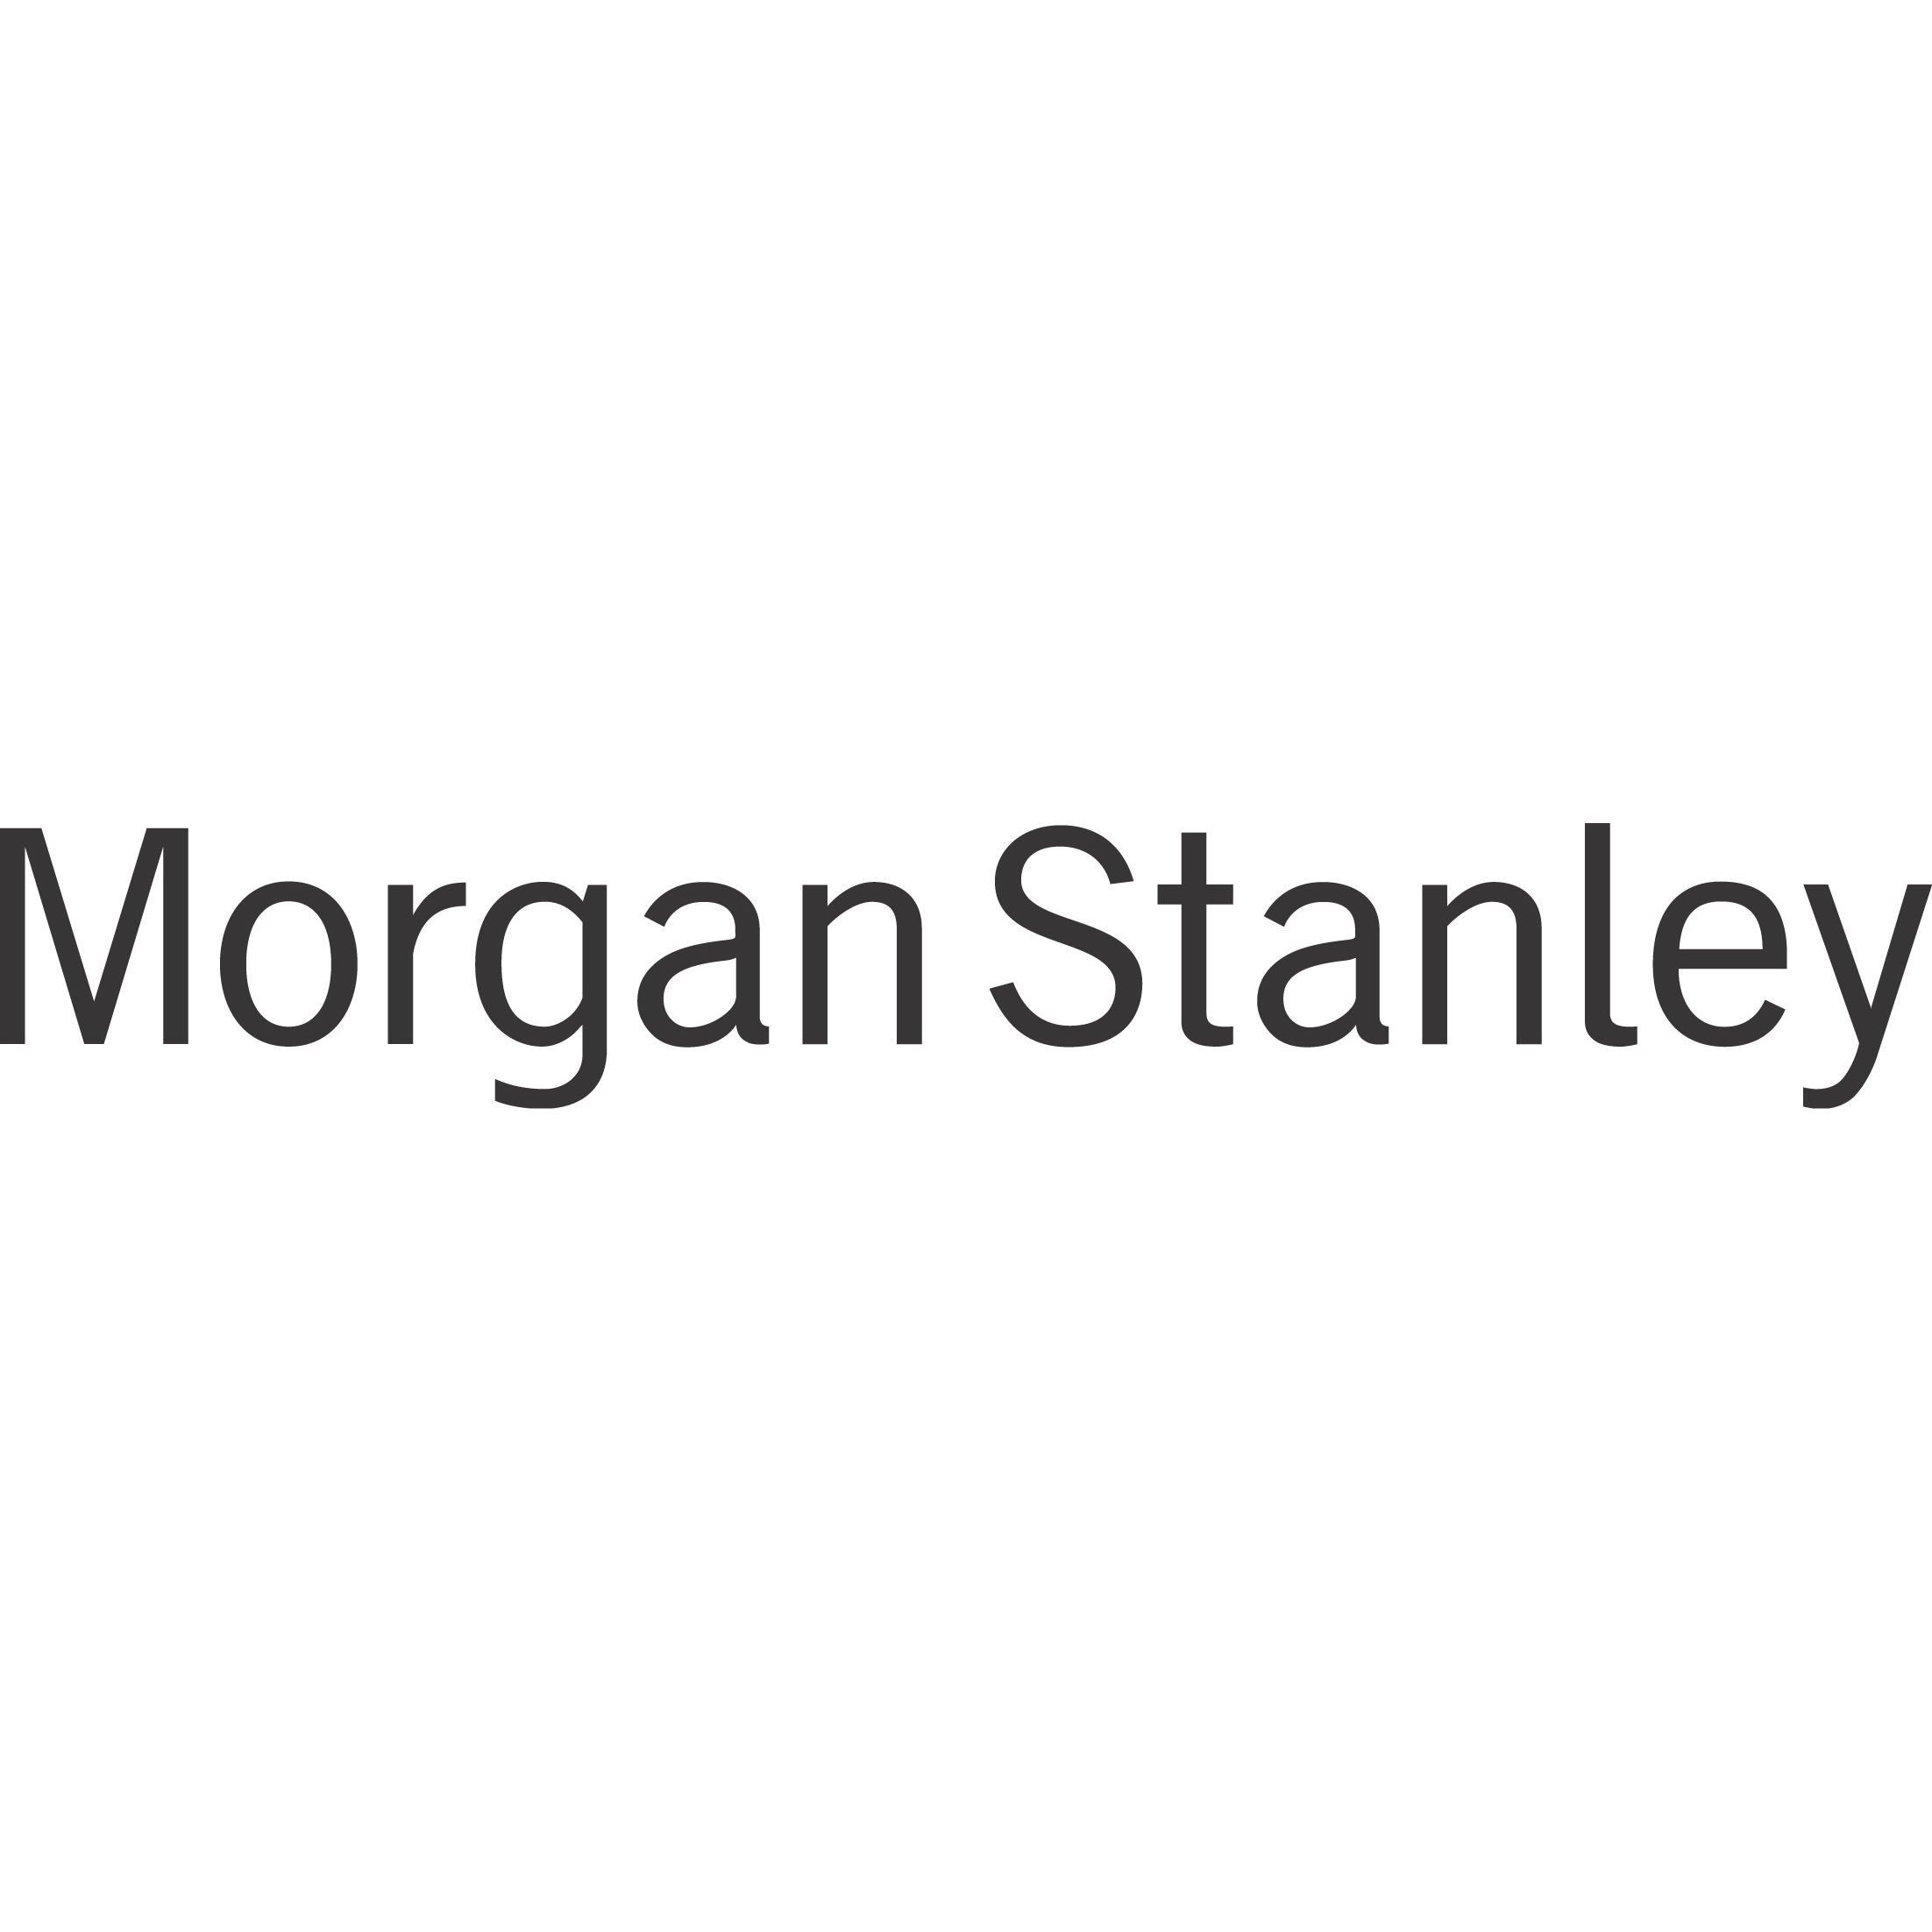 Robbie A Derooy - Morgan Stanley | Financial Advisor in West Palm Beach,Florida